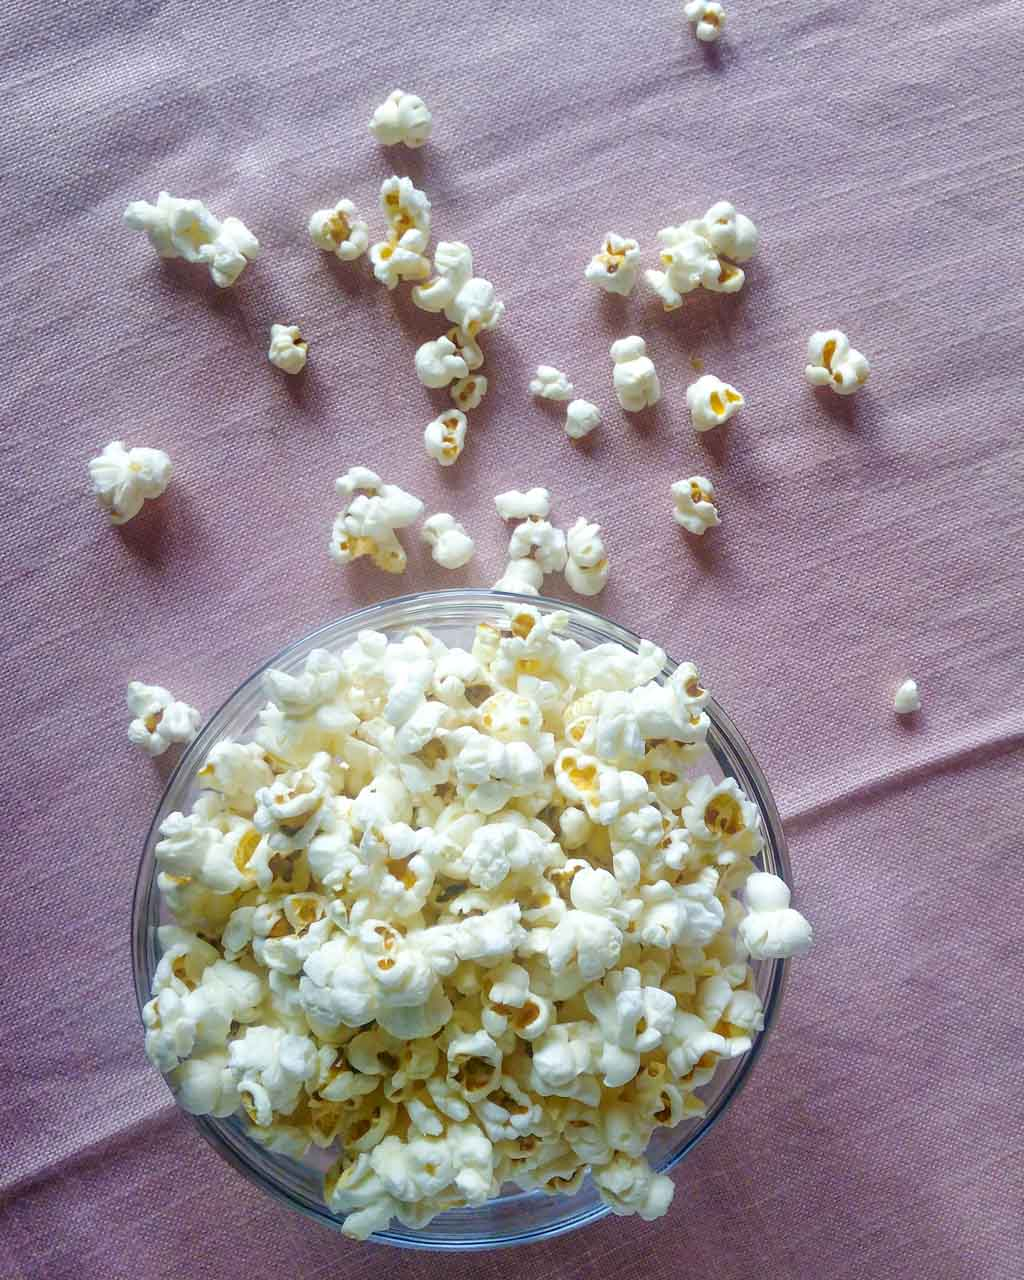 Basic Stovetop Popcorn Recipe - I really LOVE making my own popcorn. They are really EASY to make, cheap and healthy crunchy snack. All you need is a pot with a lid, a little bit of oil and popcorn kernels. Top them with anything you can imagine! | #popcorn #stovetoppopcorn #popcornrecipe #diypopcorn | simplyanchy.com